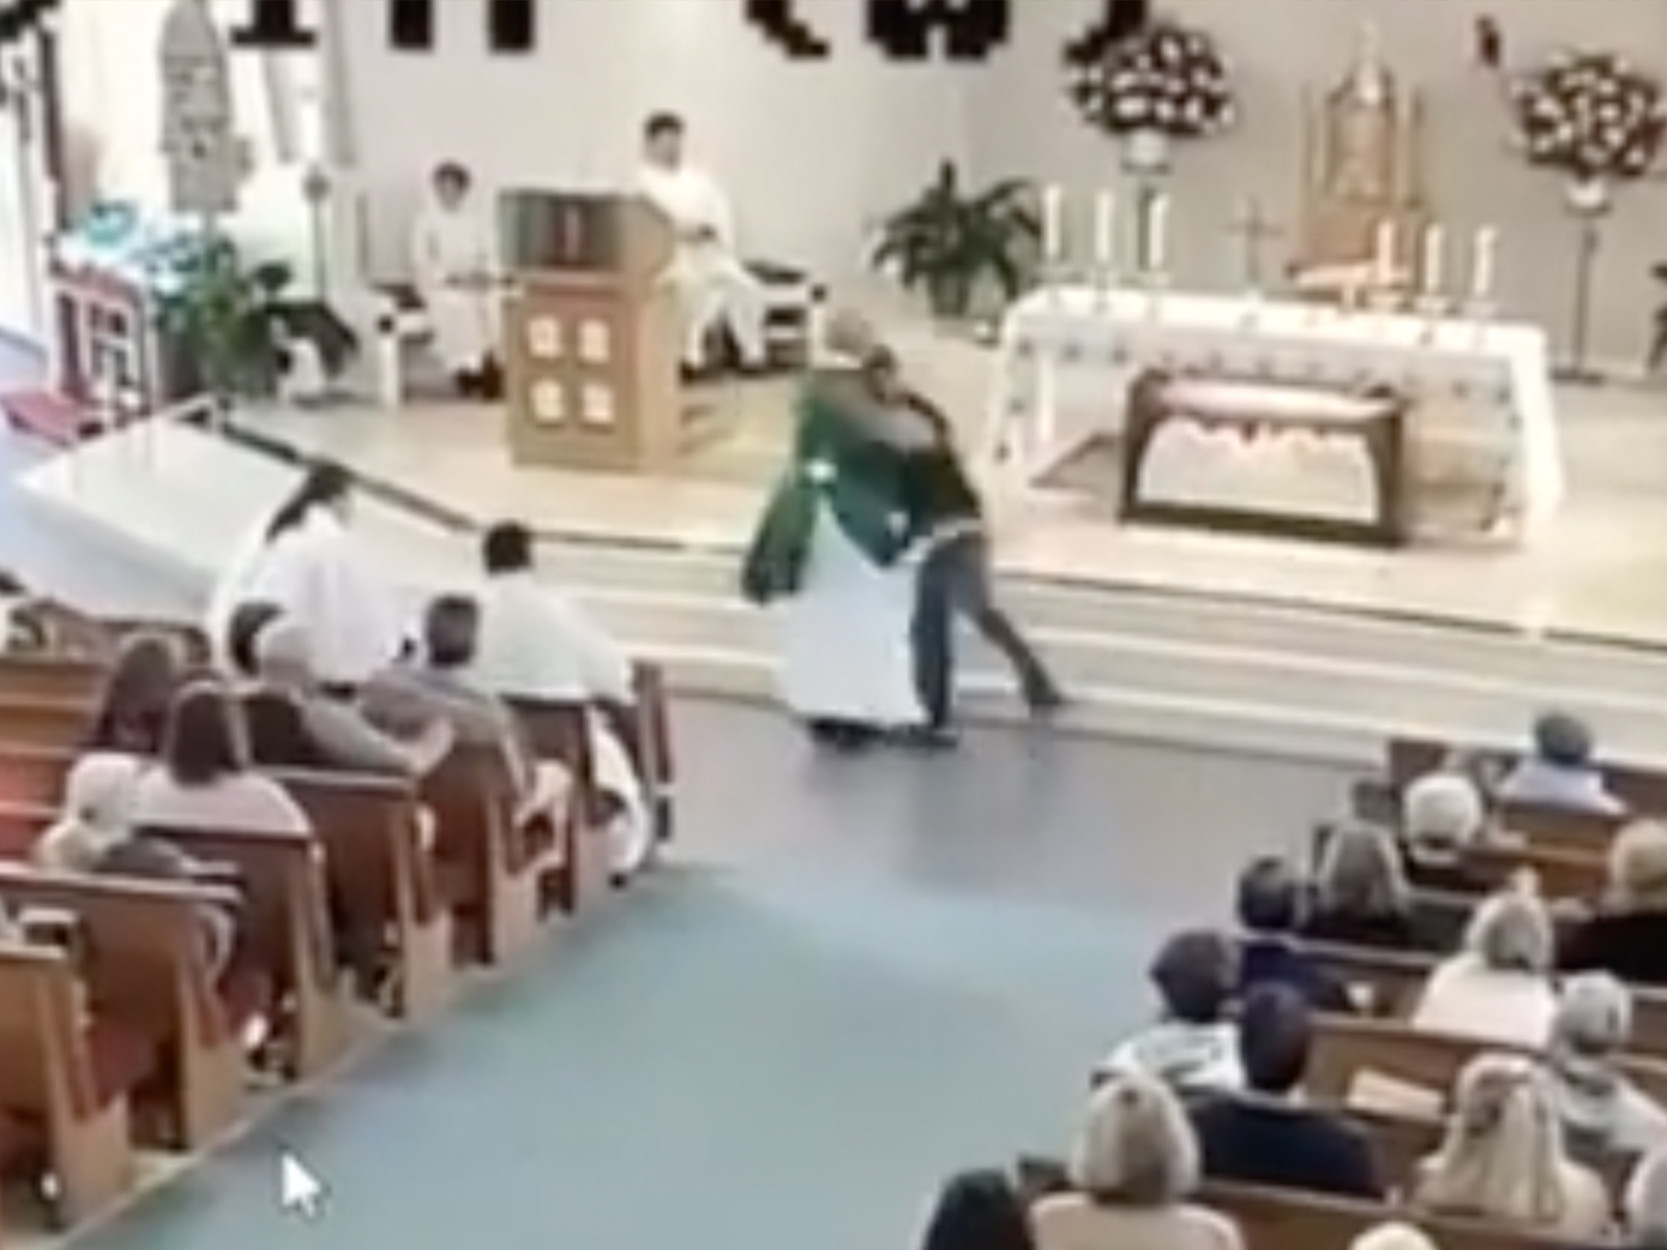 SEE IT: Bizarre video shows Florida man tackling church deacon during weekend mass